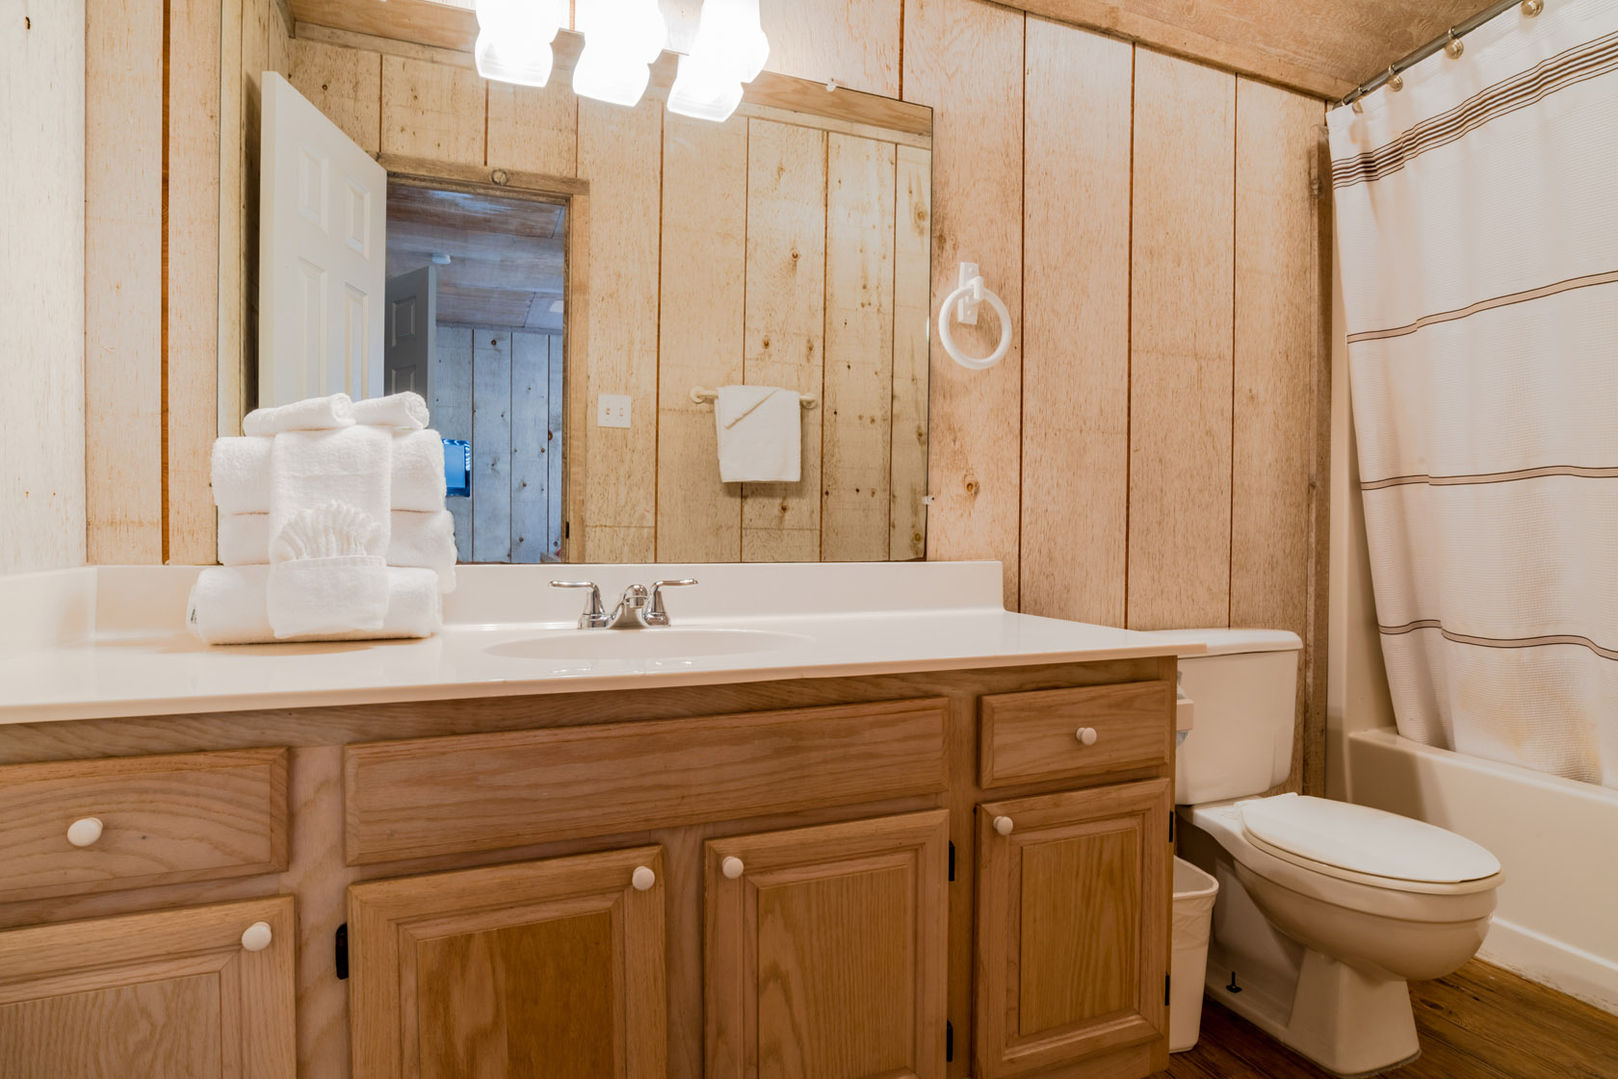 Single Vanity Sink, Toilet, and Shower-Tub Combo.